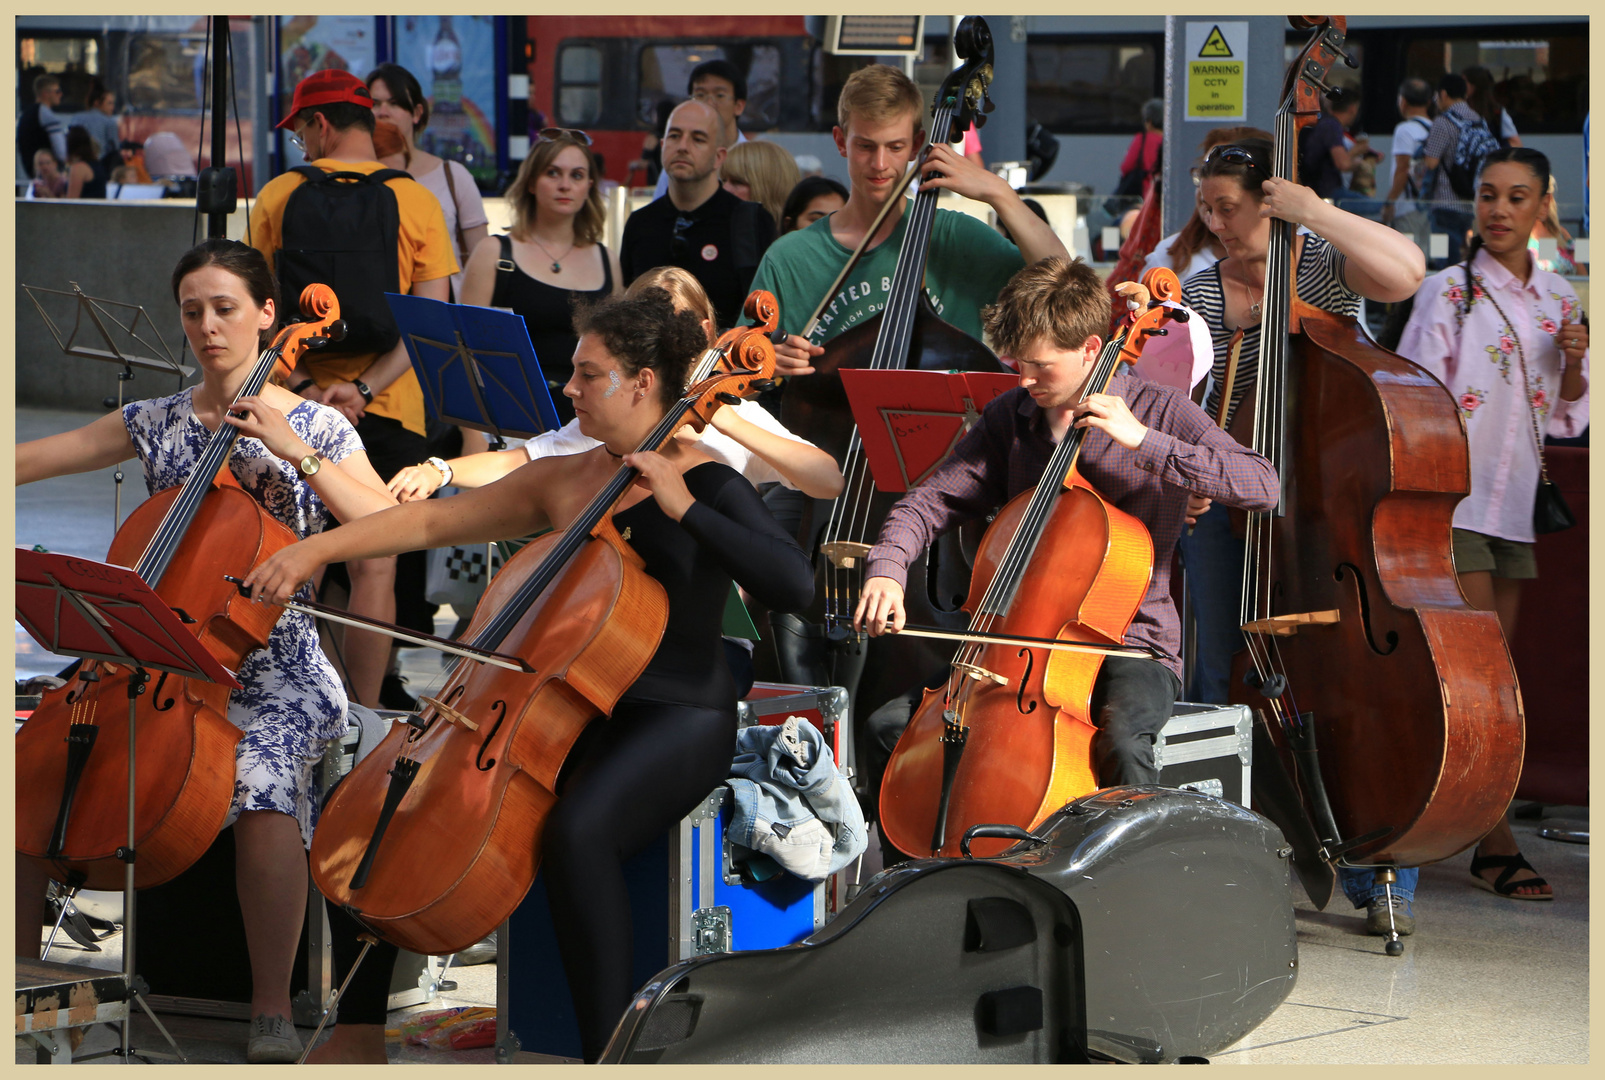 street orchestra at newcastle central station 13